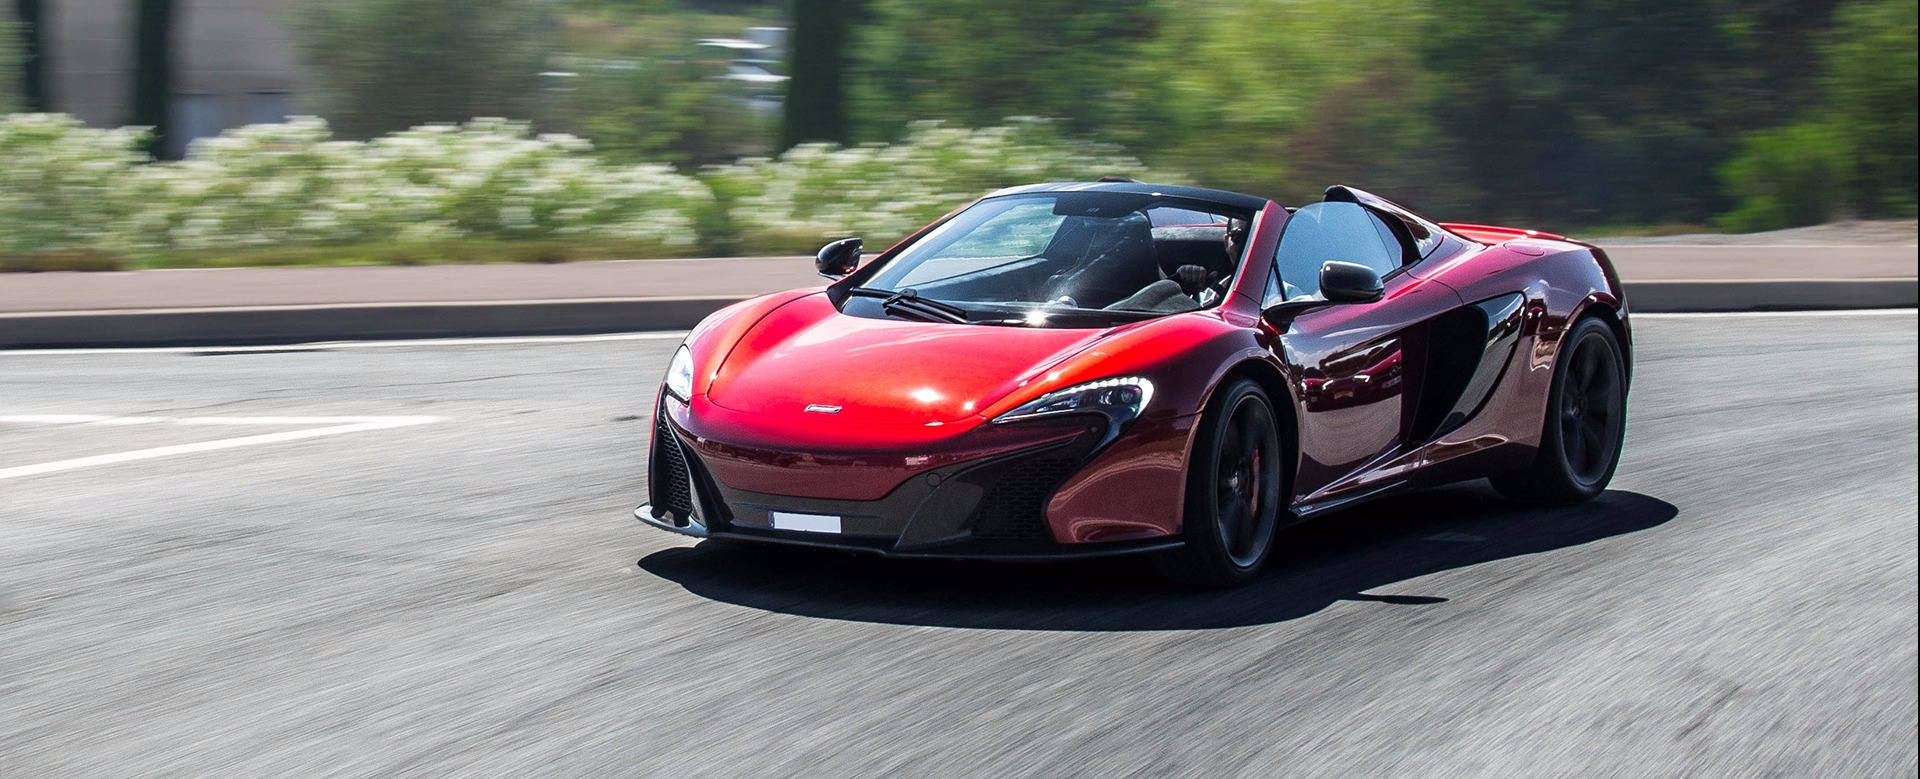 Supercar Driving Experience Exotic Car Road Trip Tour Europe